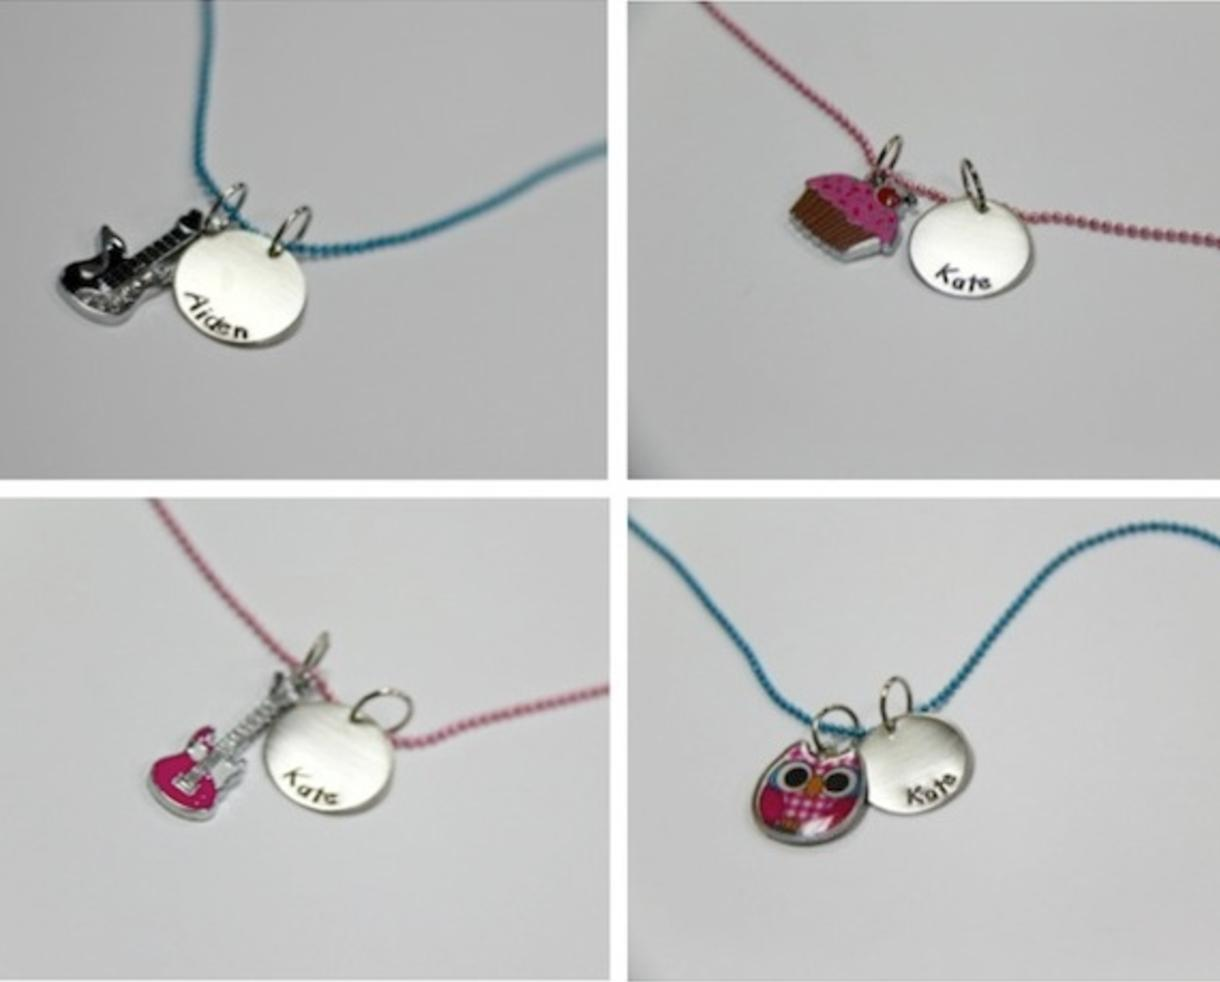 $15 for Personalized Kid's Necklace Shipped - Guitar, Cupcake or Owl Charm (32% off)